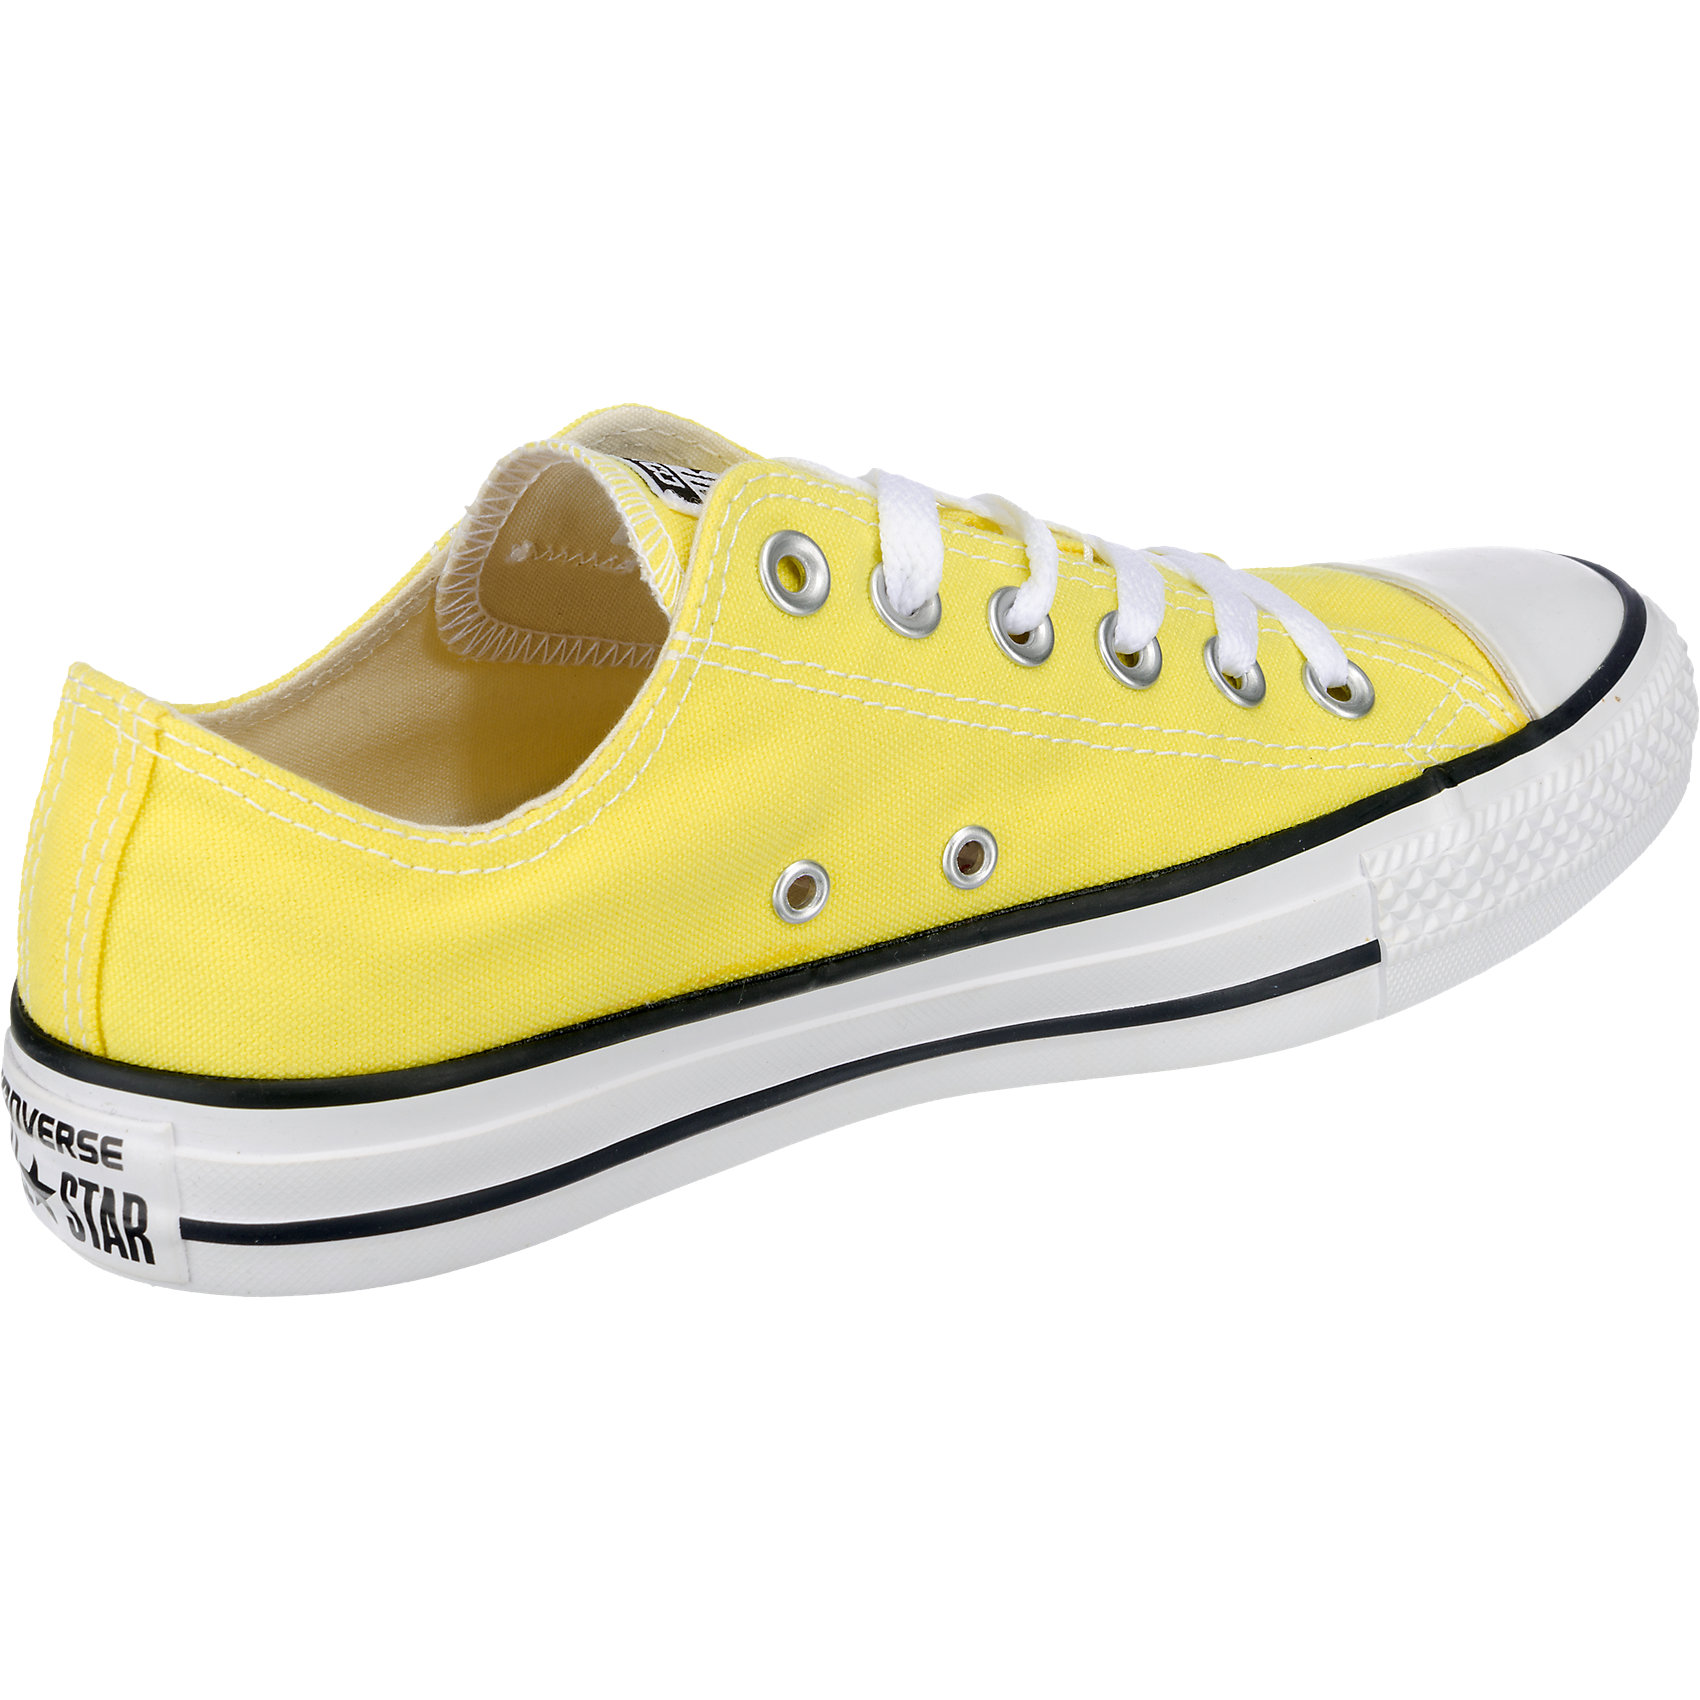 Neu CONVERSE Chuck Taylor All Star Ox Sneakers gelb 5772575